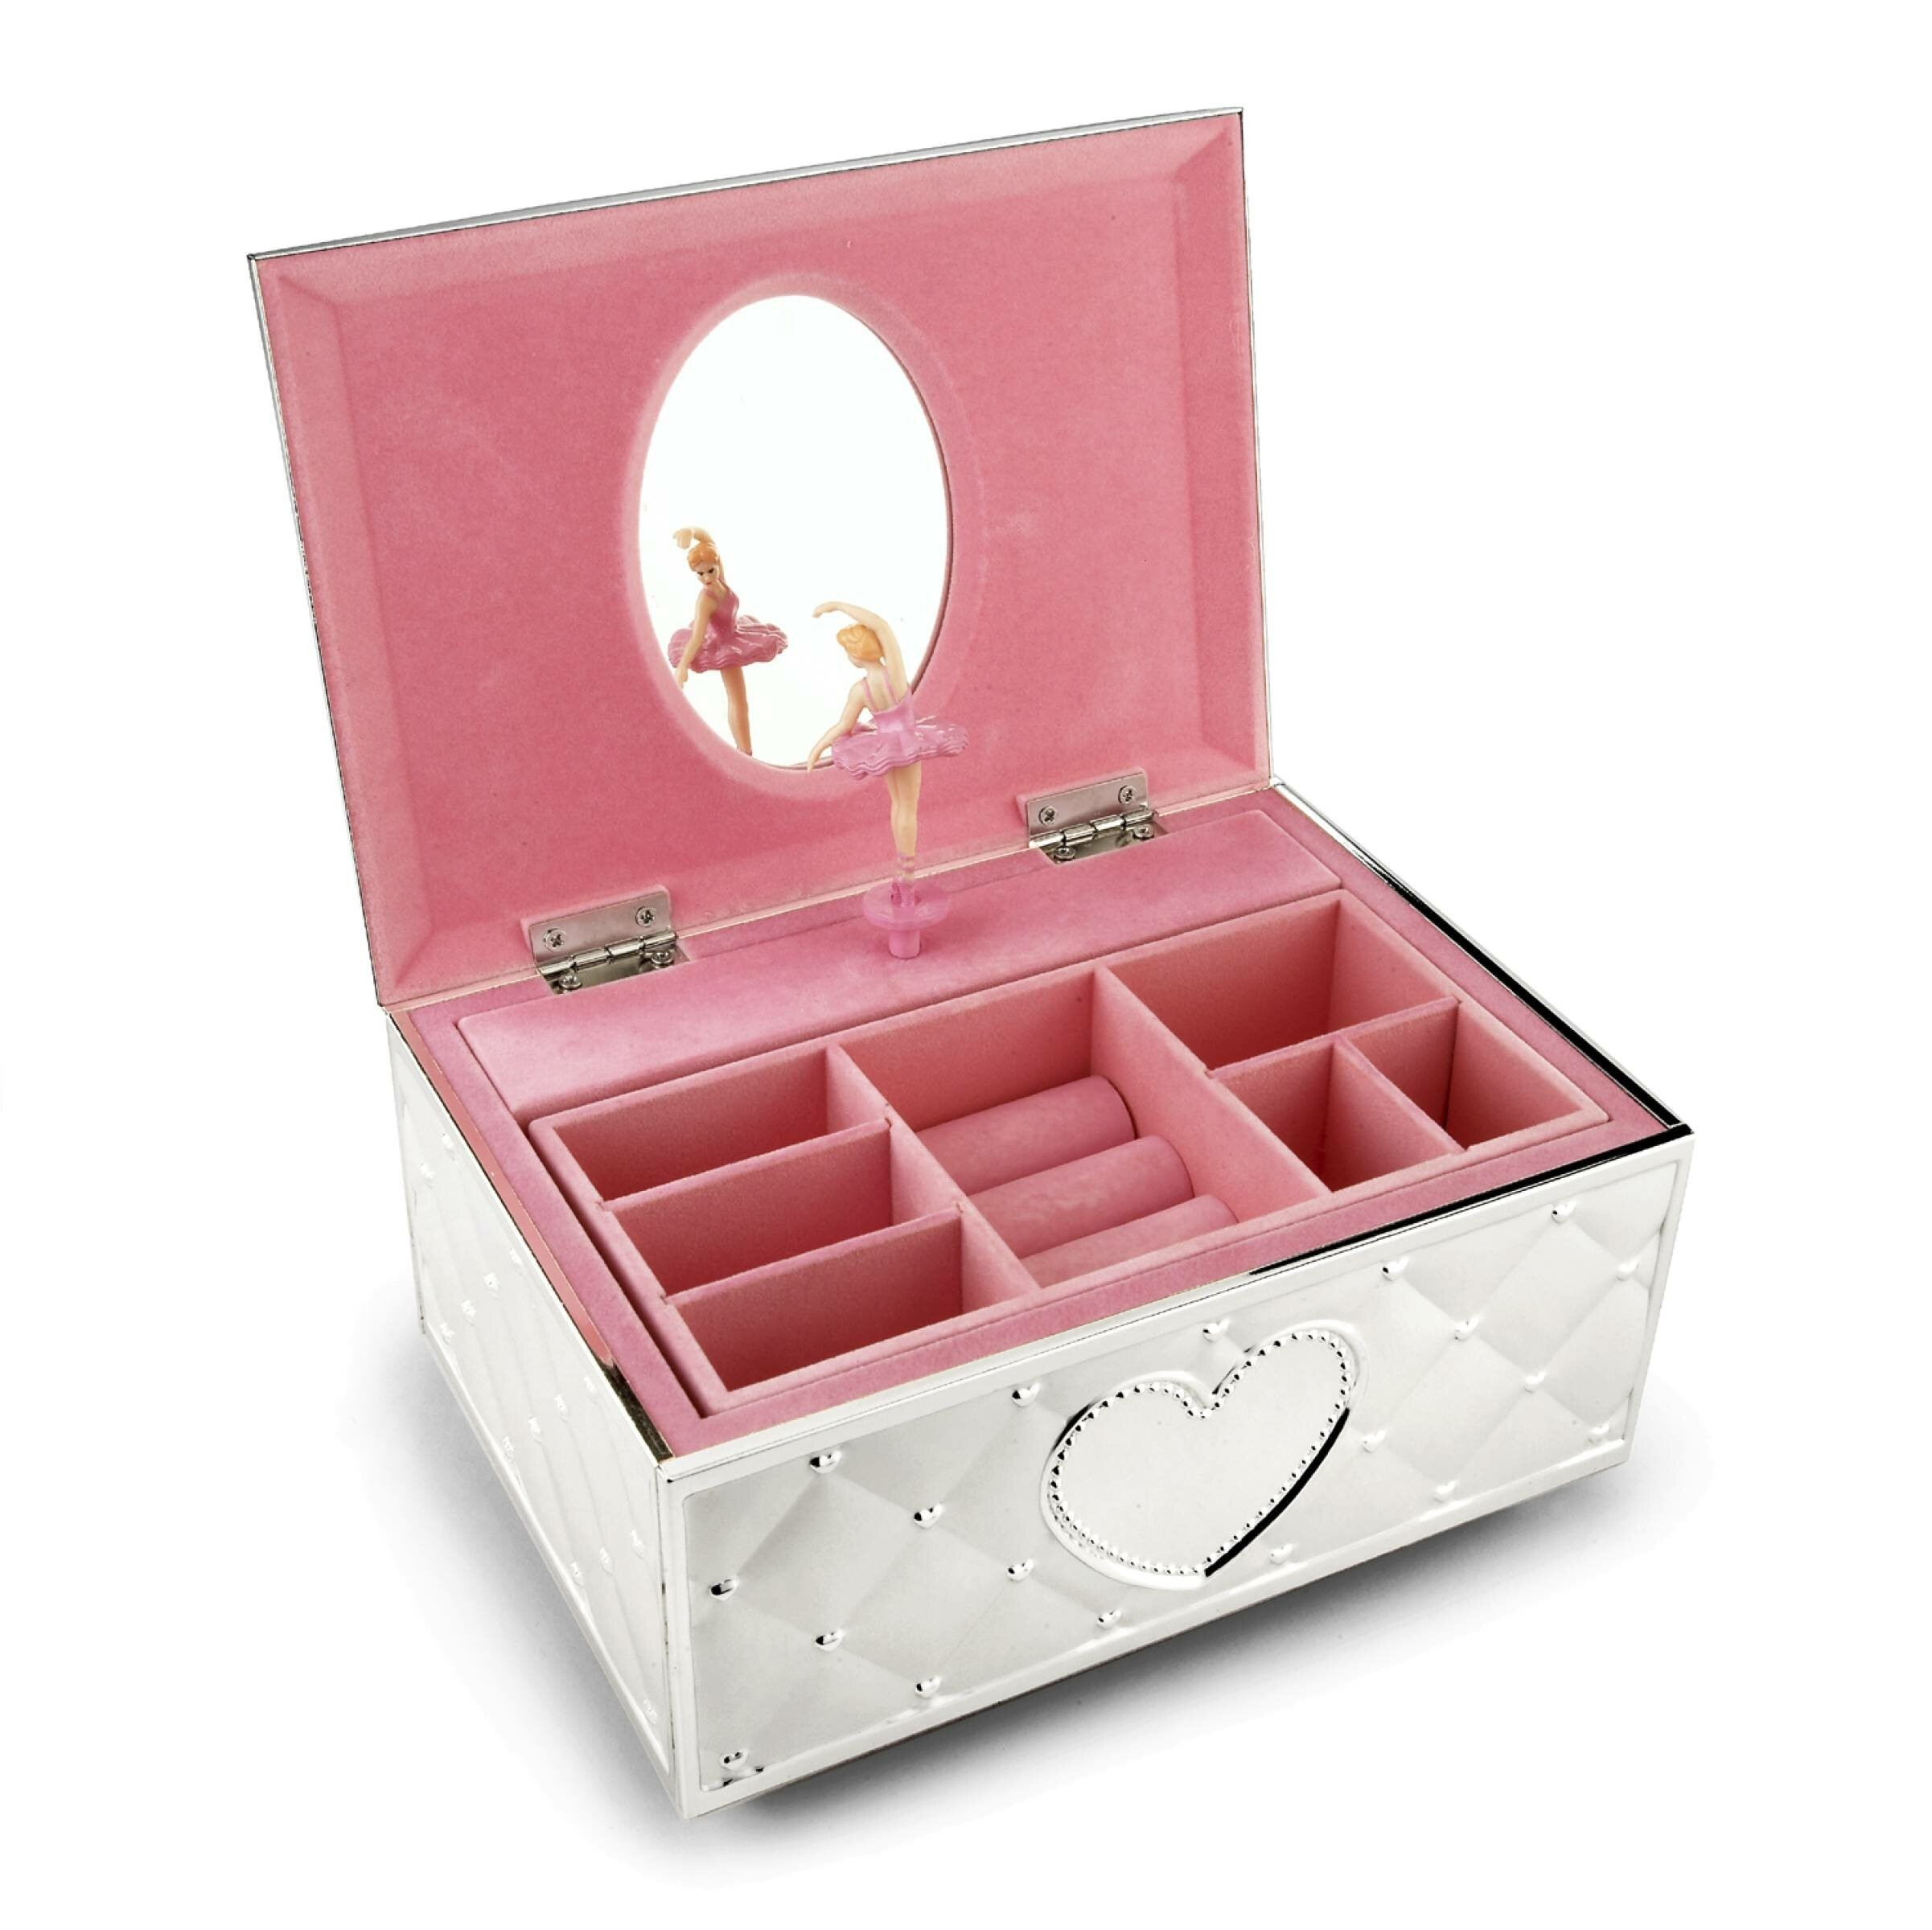 Childrens Musical Jewelry Boxes Foter